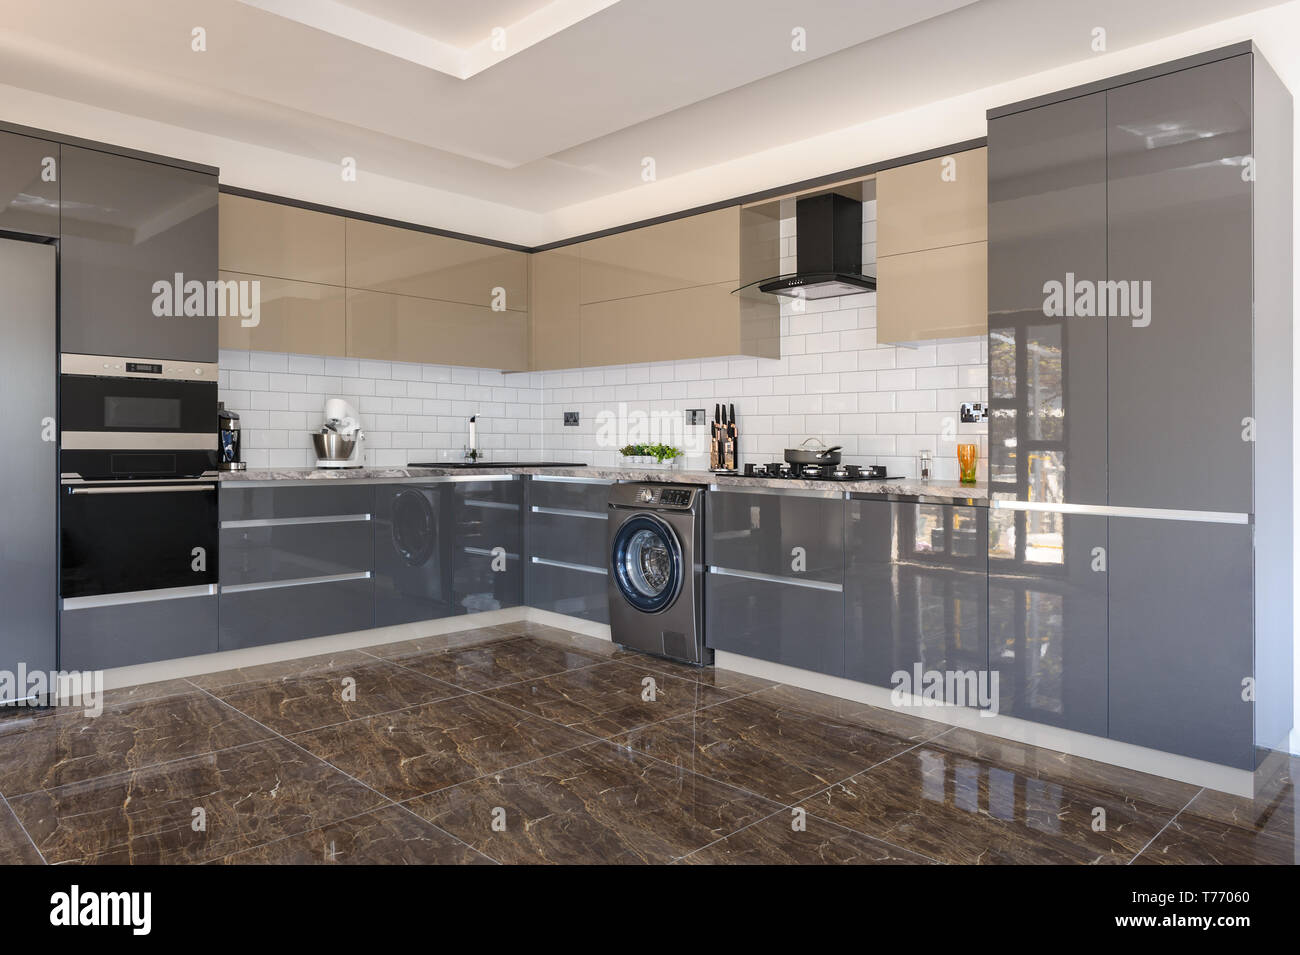 Spacious Luxury Well Designed Modern Grey Beige And White Kitchen With Marble Tiles Floor Stock Photo Alamy